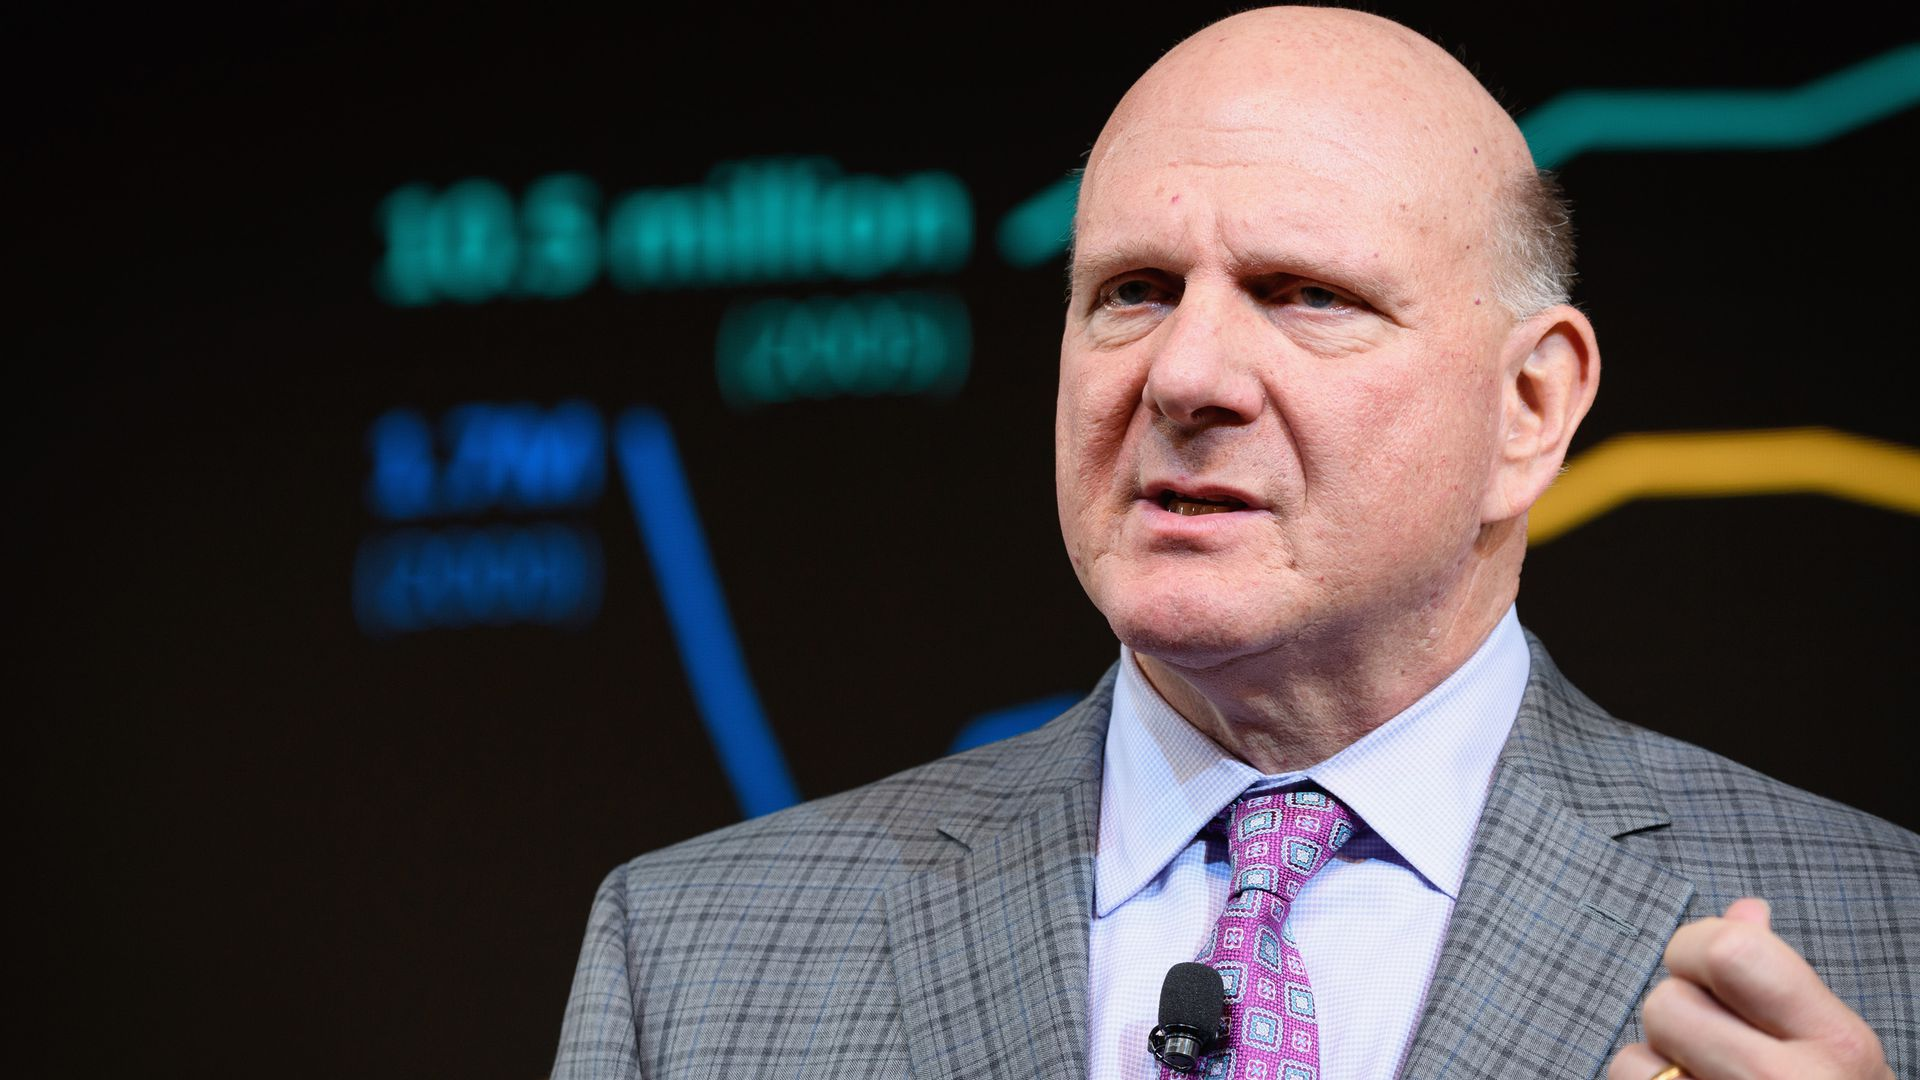 In this image, Steve Balmer speaks to an audience in a suit.